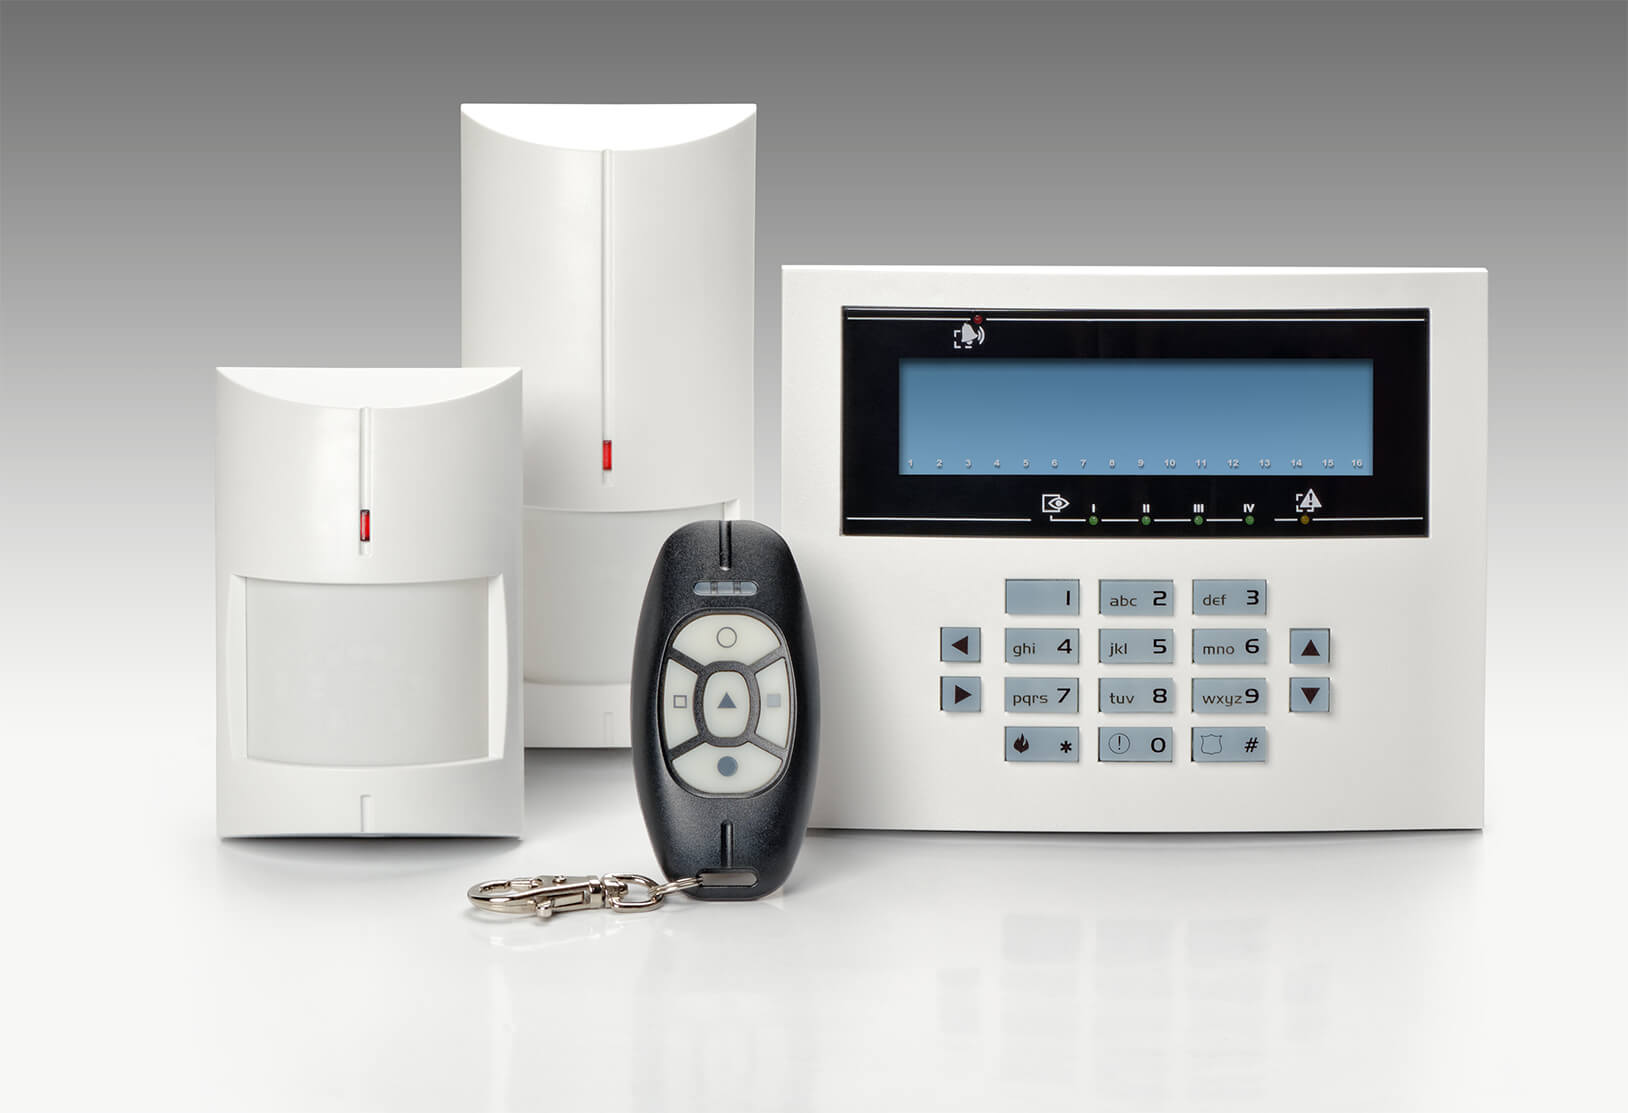 Business & Residential NSI / NACOSS Approved Burglar Alarms In North East London - Local North East London security company.Call 02078872244 - Dedicated to Safety & Security. Companies, shops and homes ..